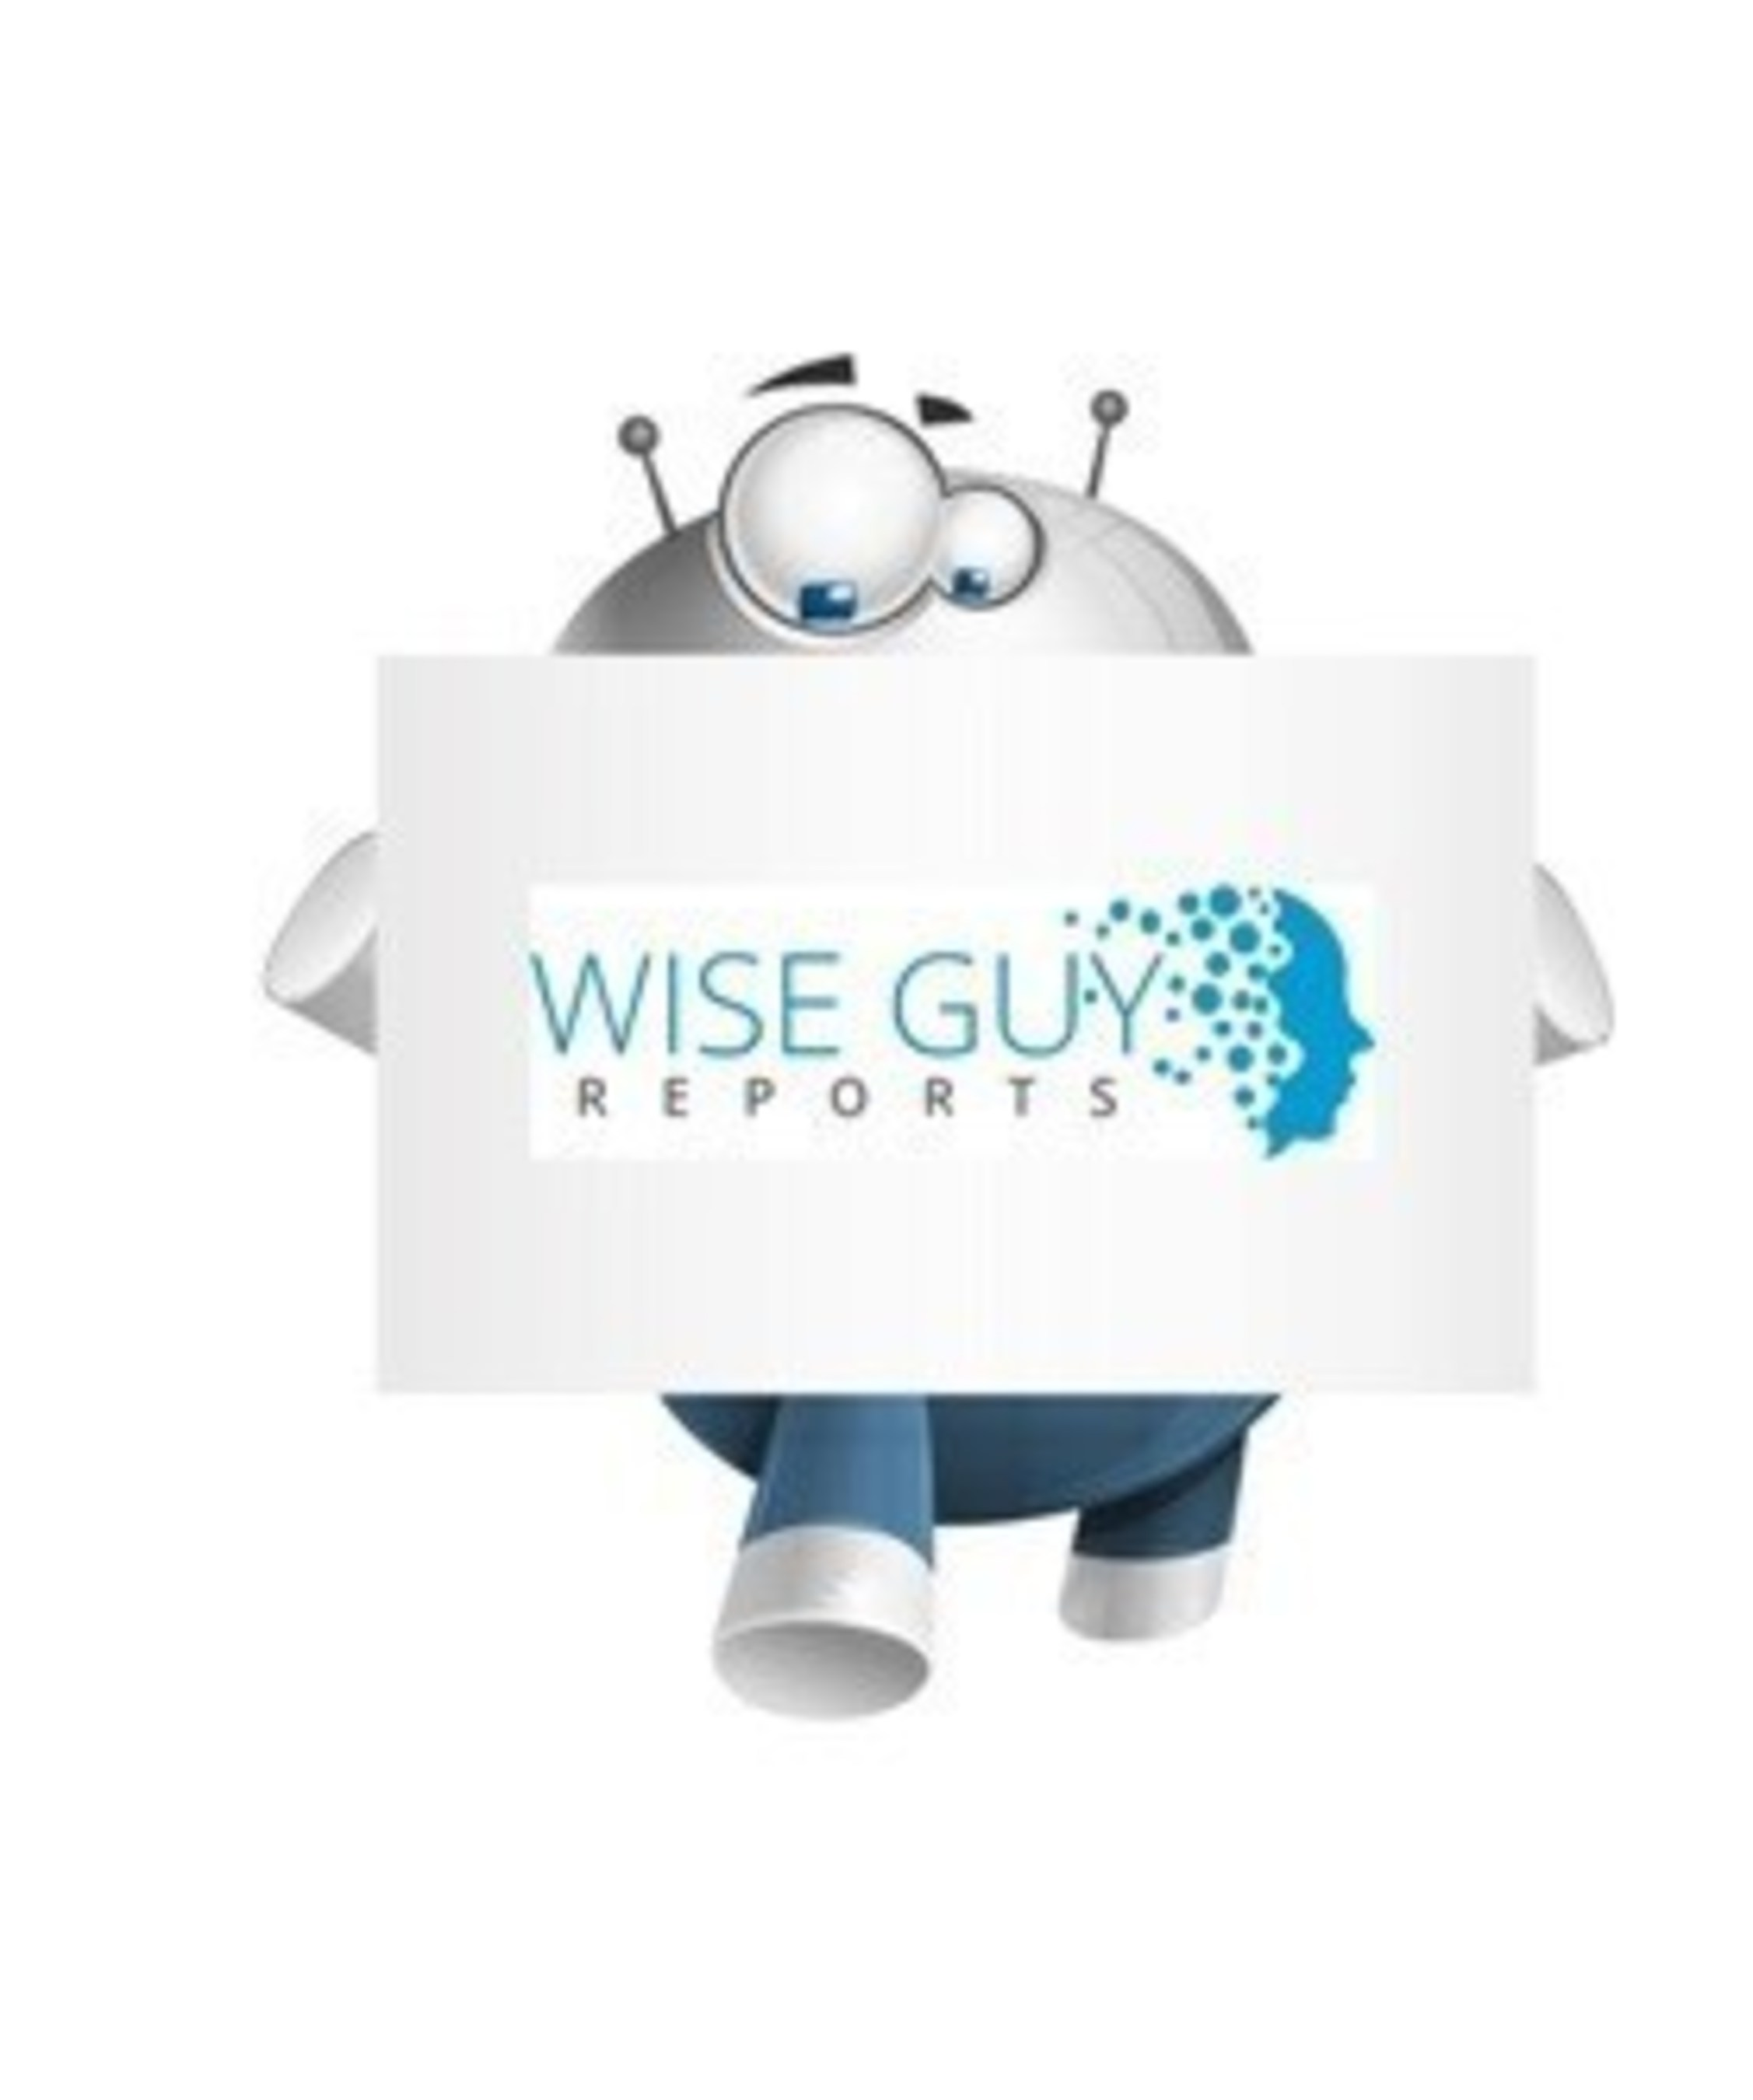 Speaker System Industry to 2021 Global and Chinese Sales, Shares and Consumption Market Research Report Available at WiseGuyReports.com